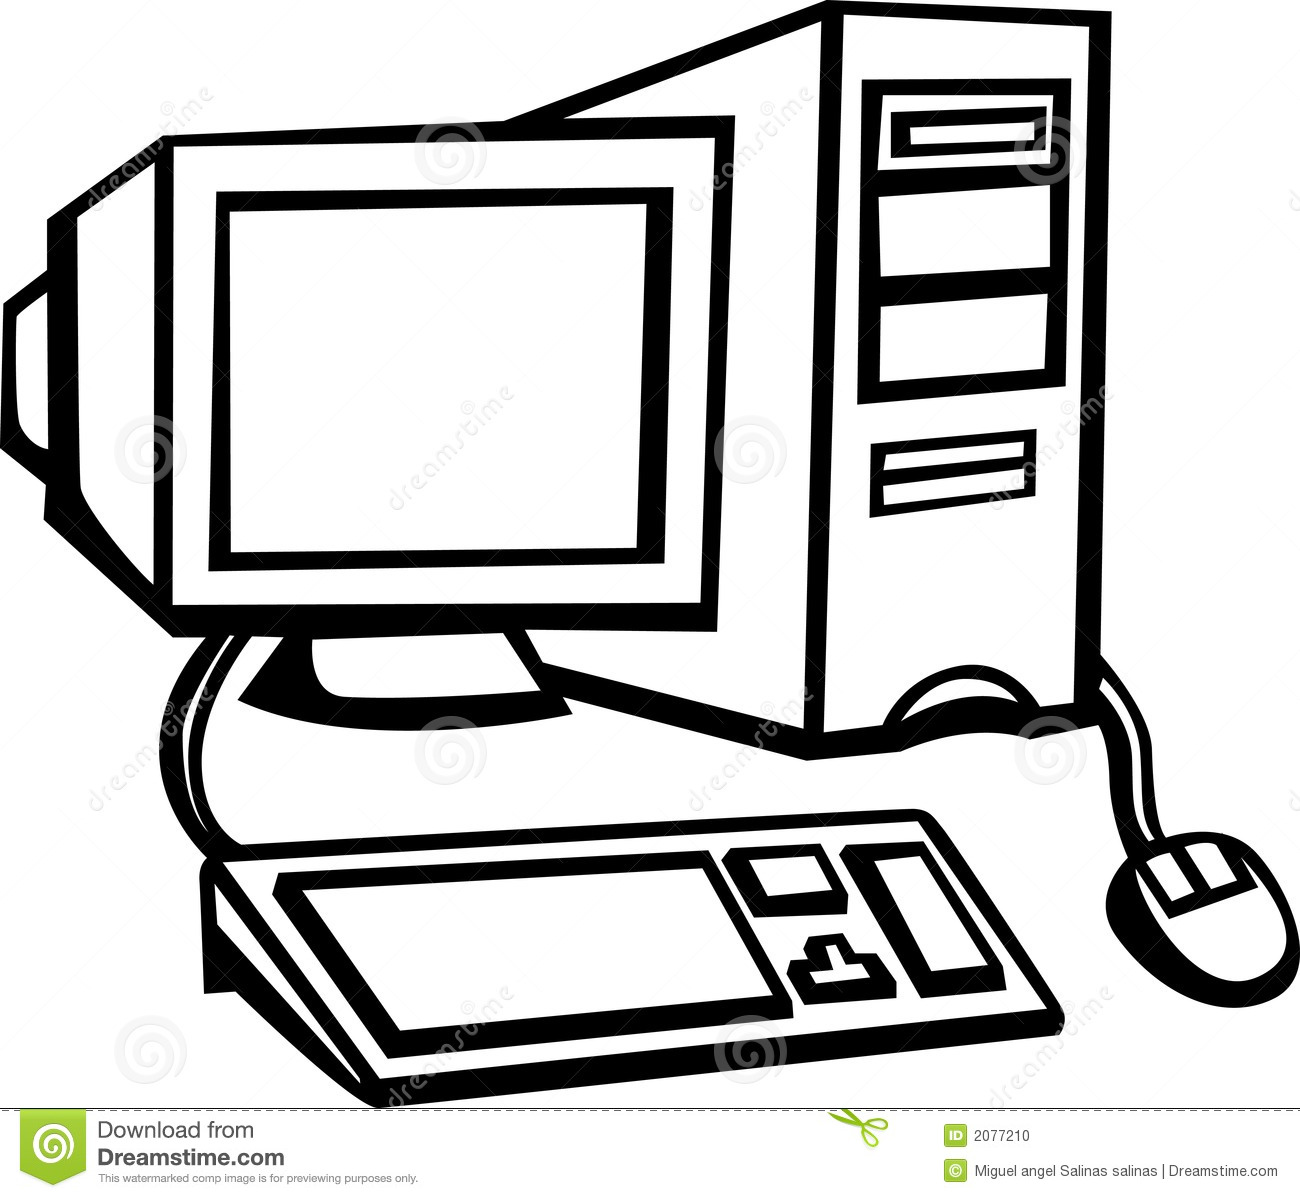 Images Of Computer Monitor Clipart